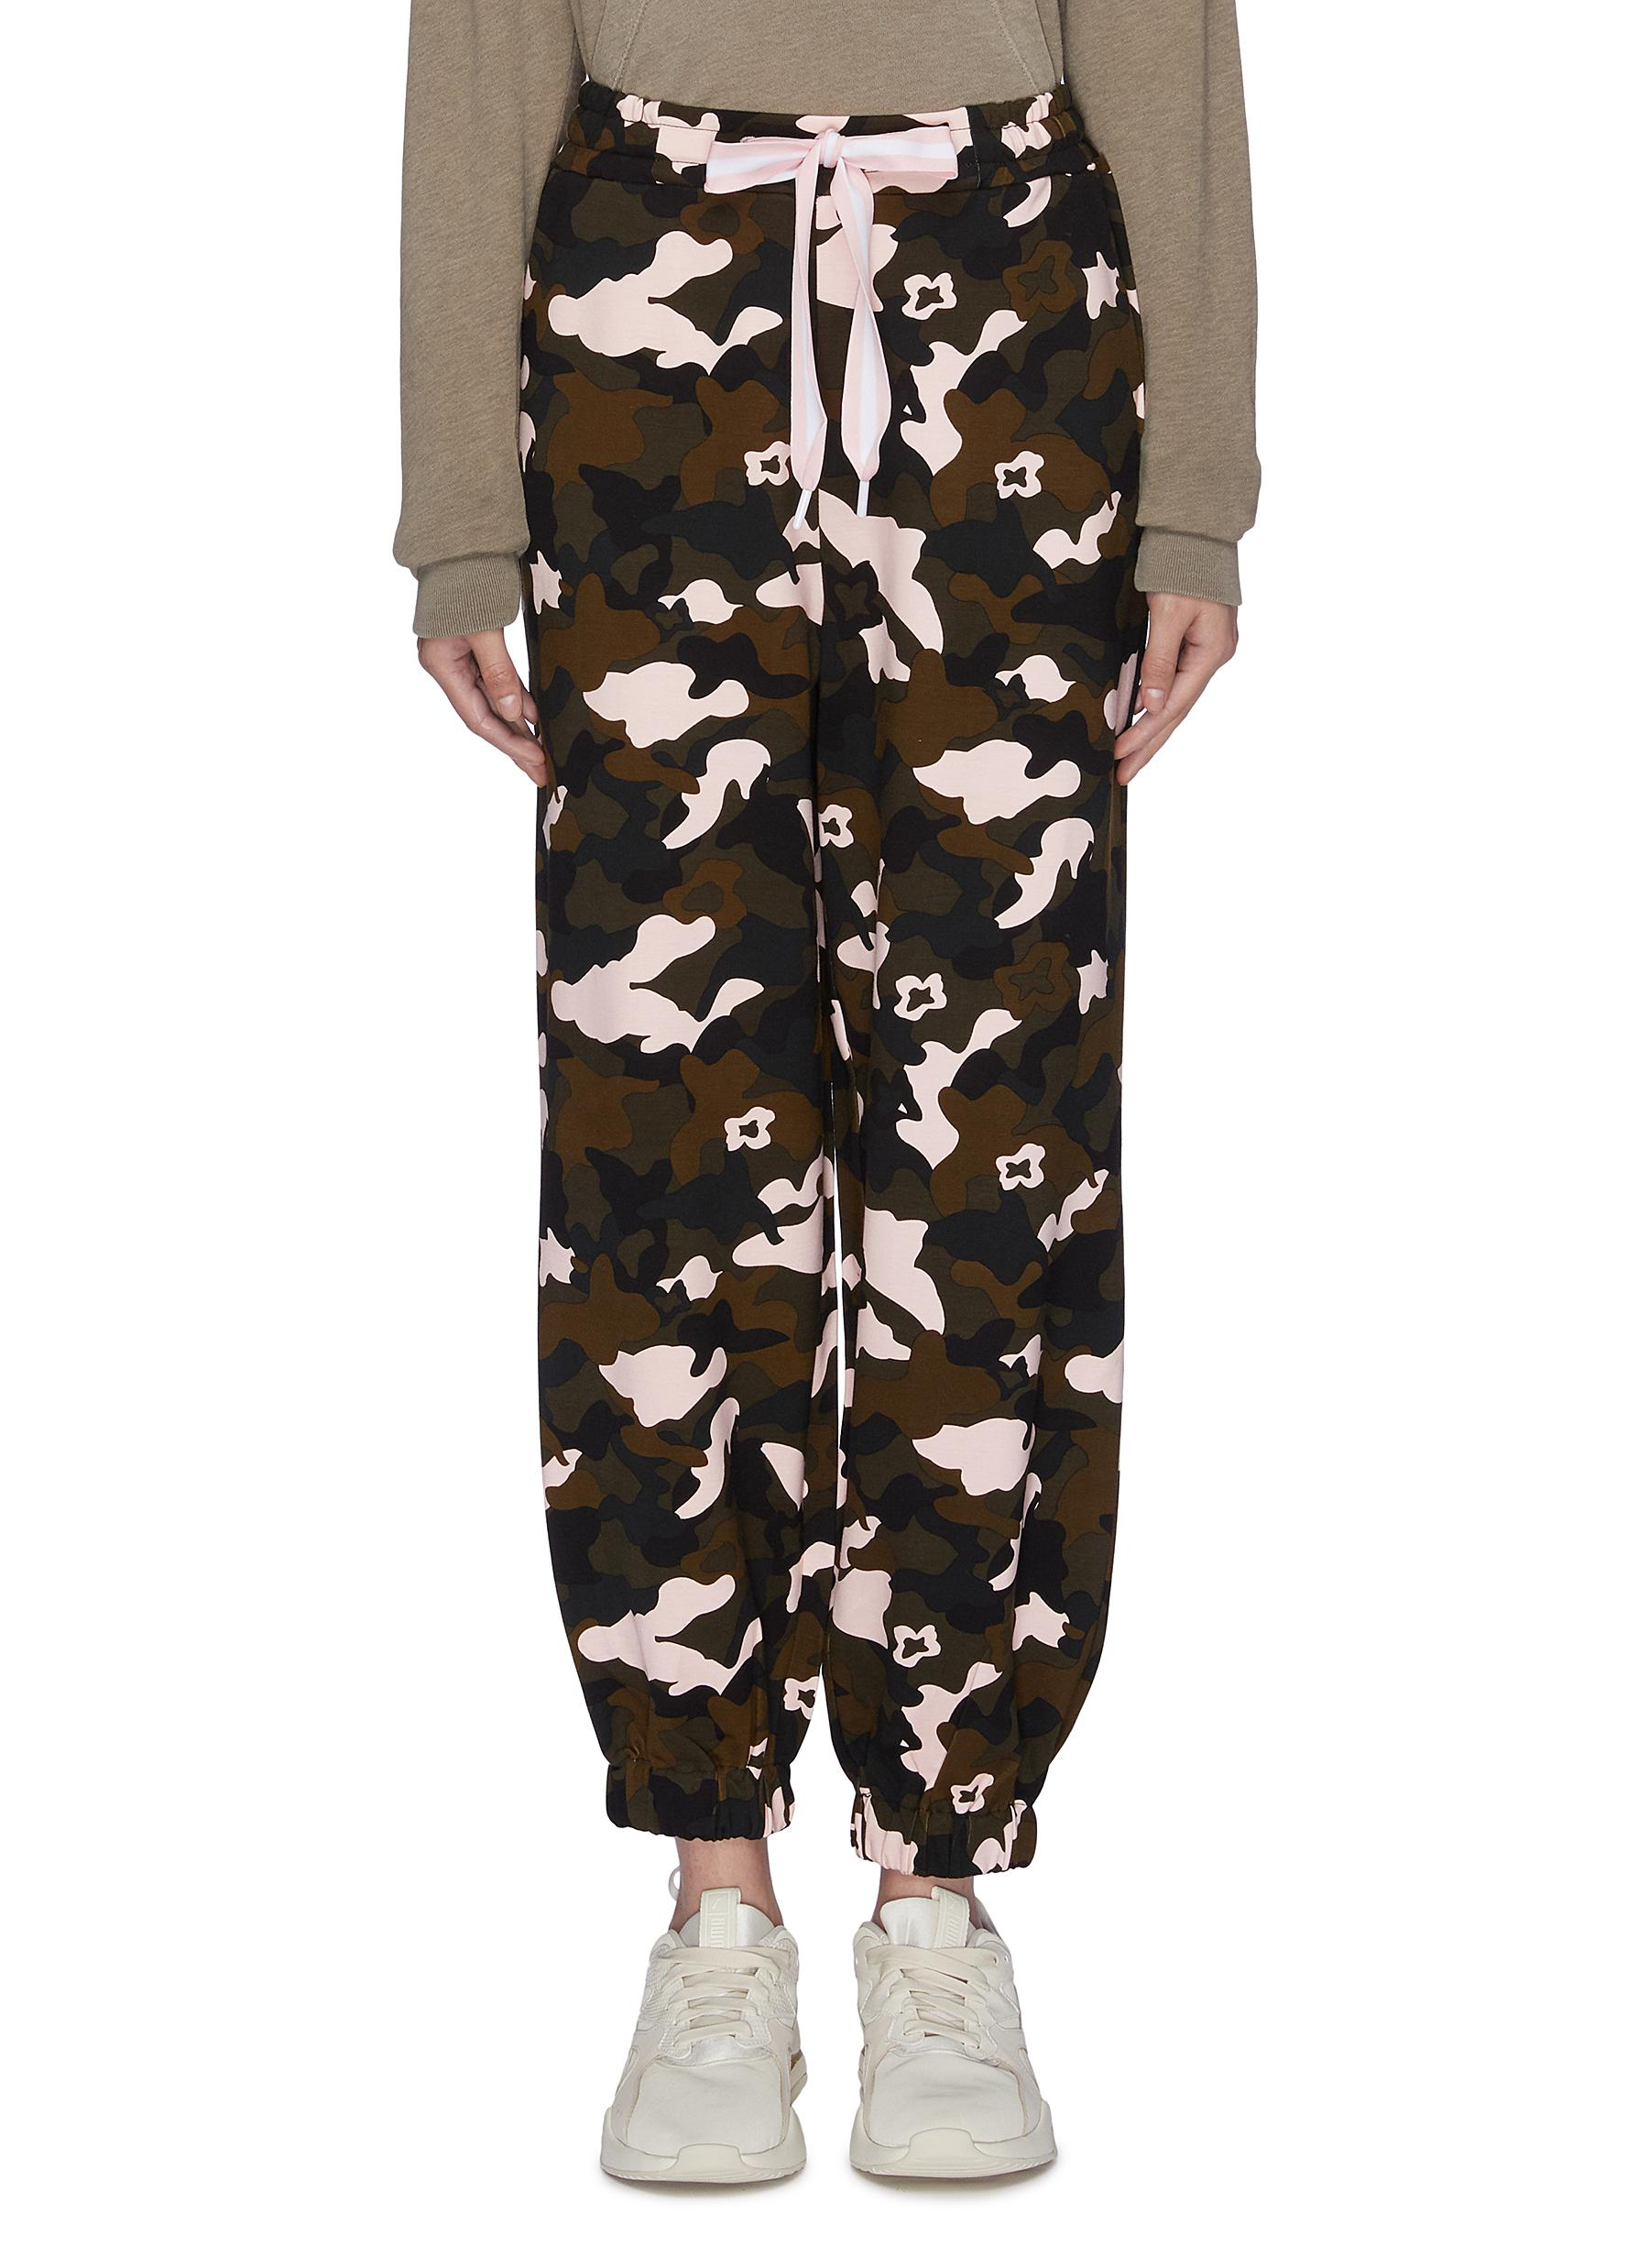 Forest Camo Ash print track pants by The Upside